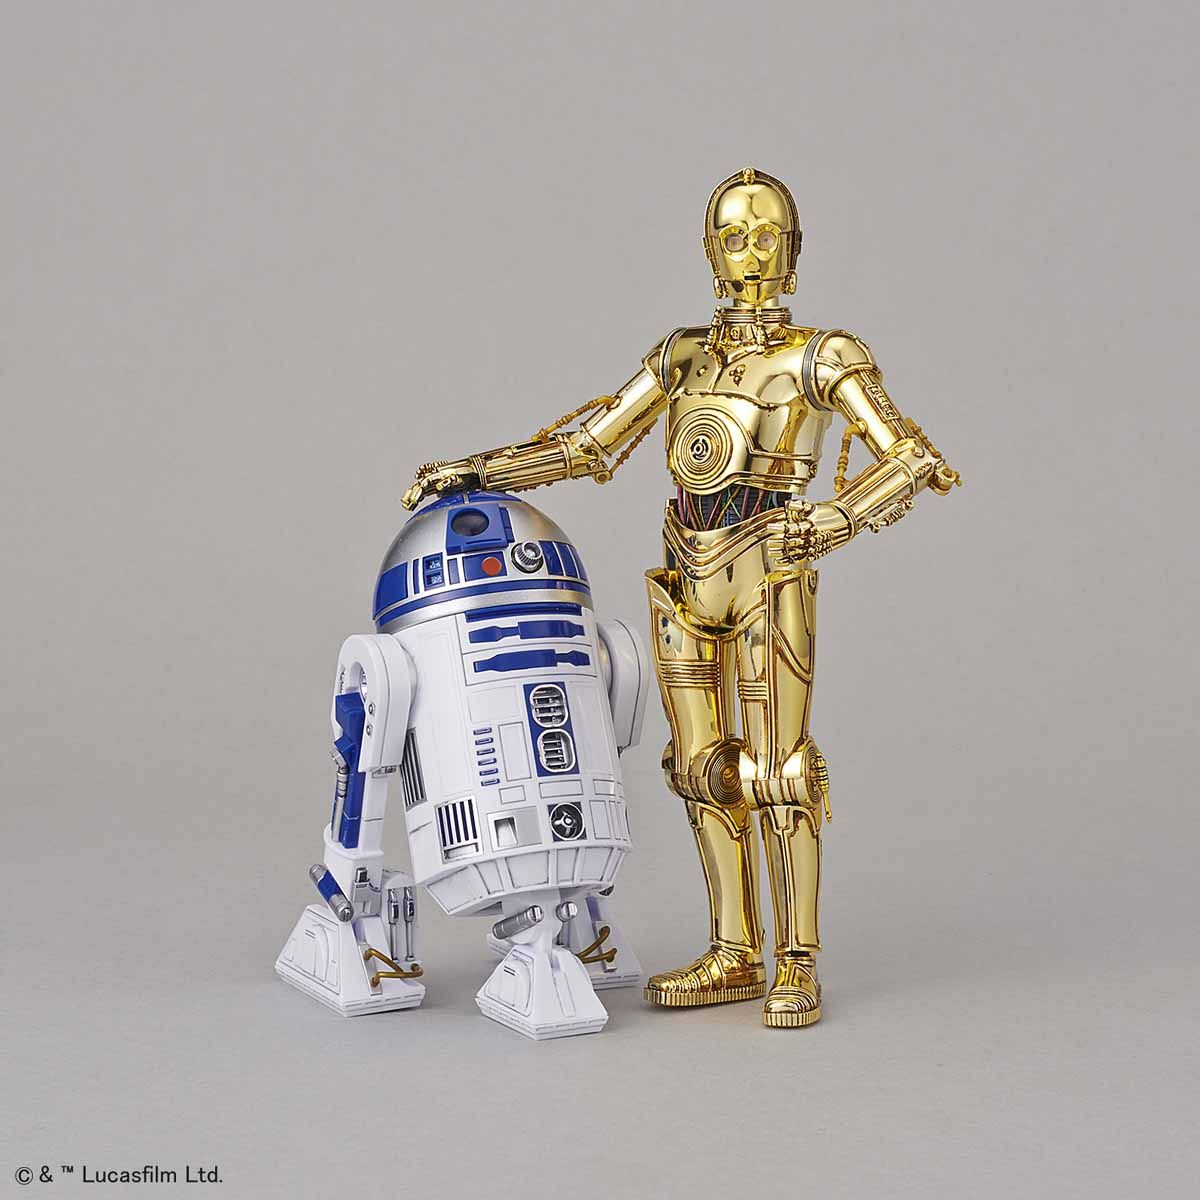 「: R2-D2 and C-3PO.」の画像検索結果